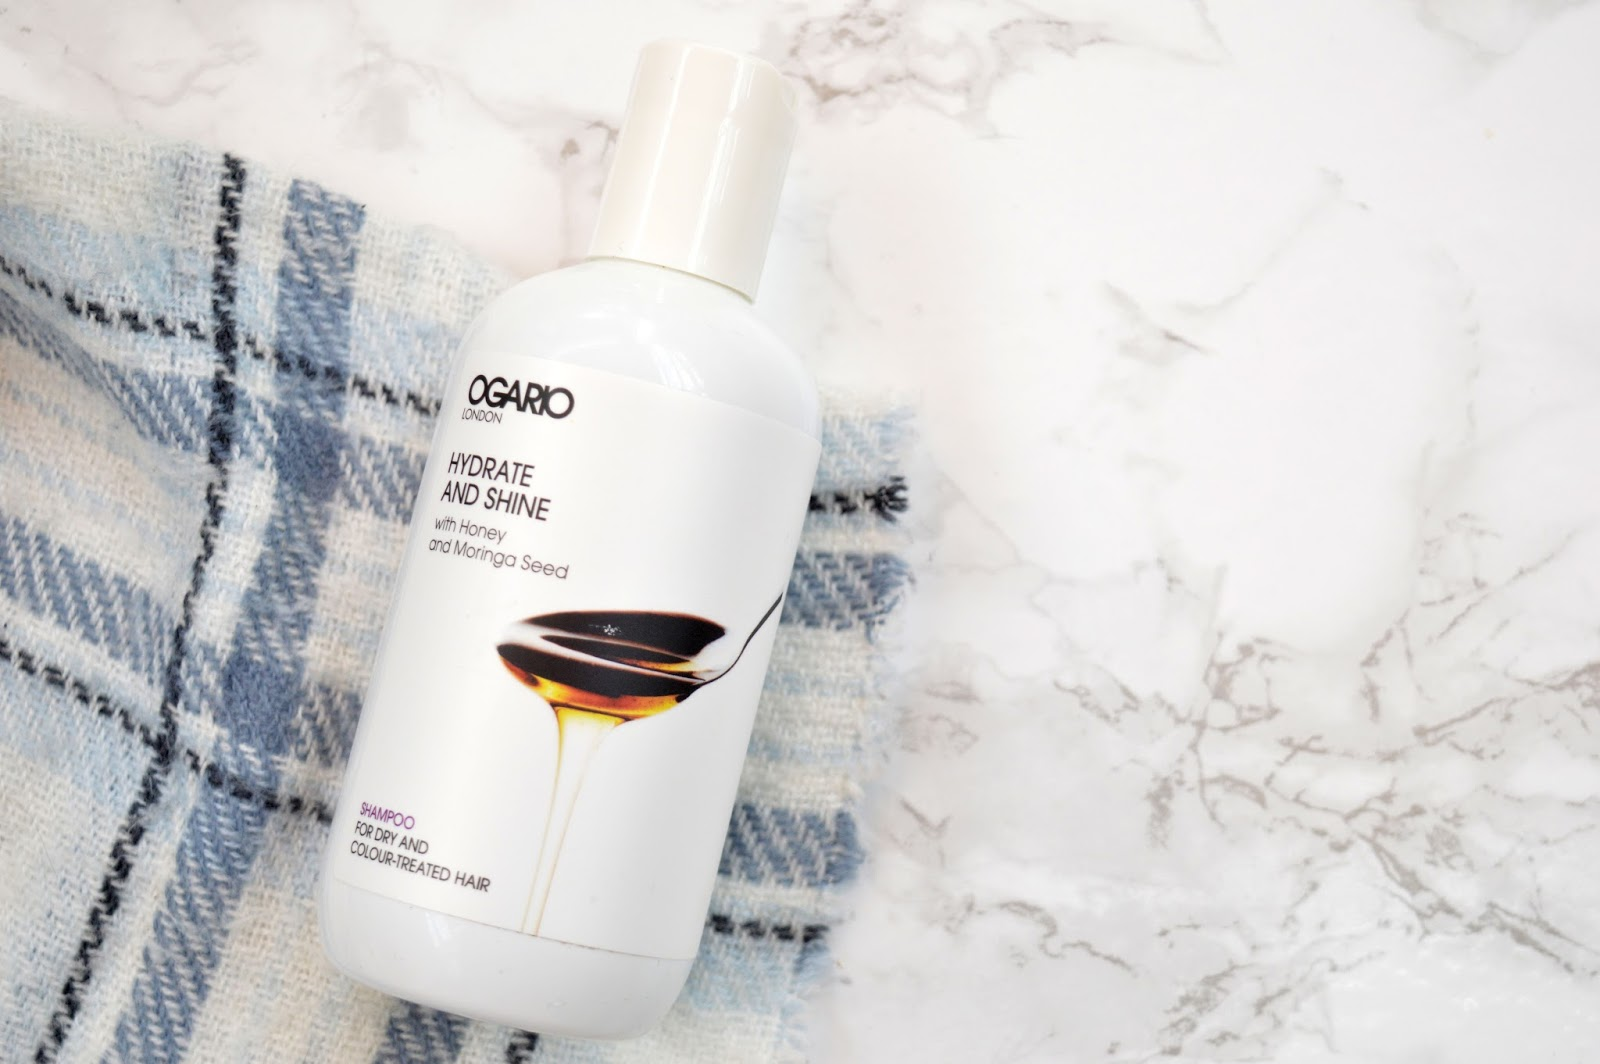 Ogario Hydrate and Shine Shampoo